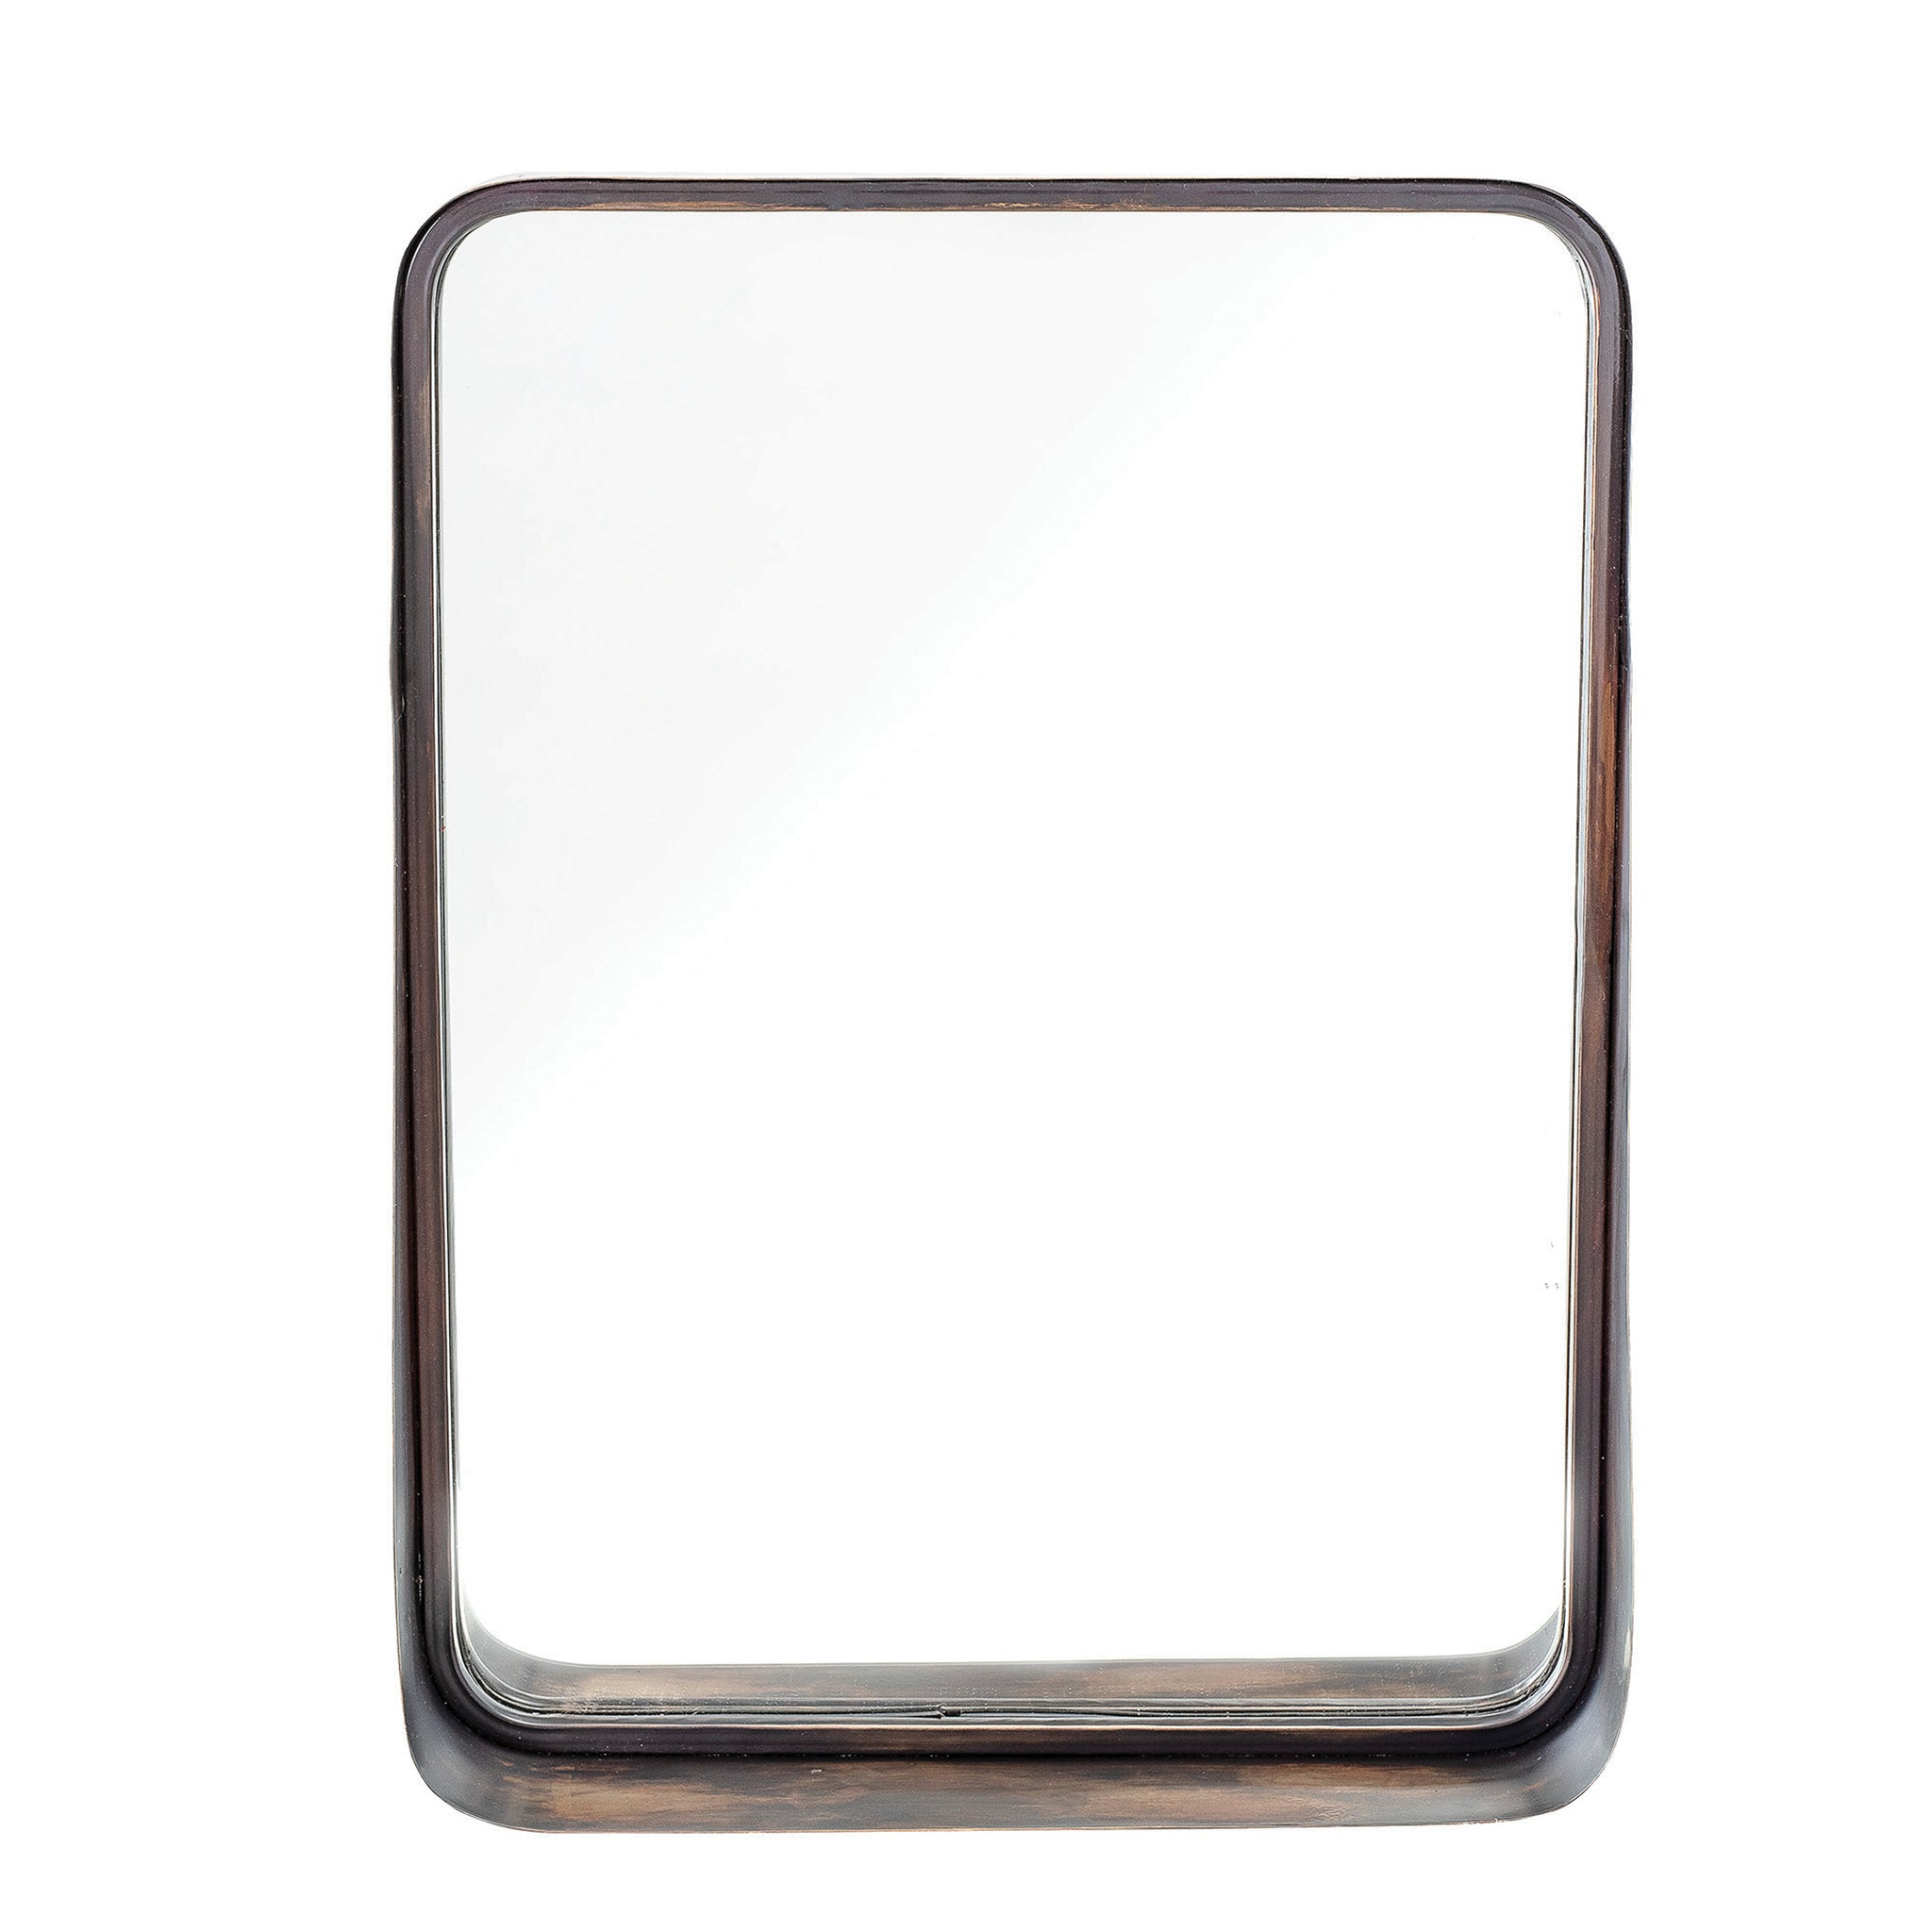 Square Wall Mirror with Shelf, Metal Frame & Antique Copper Finish